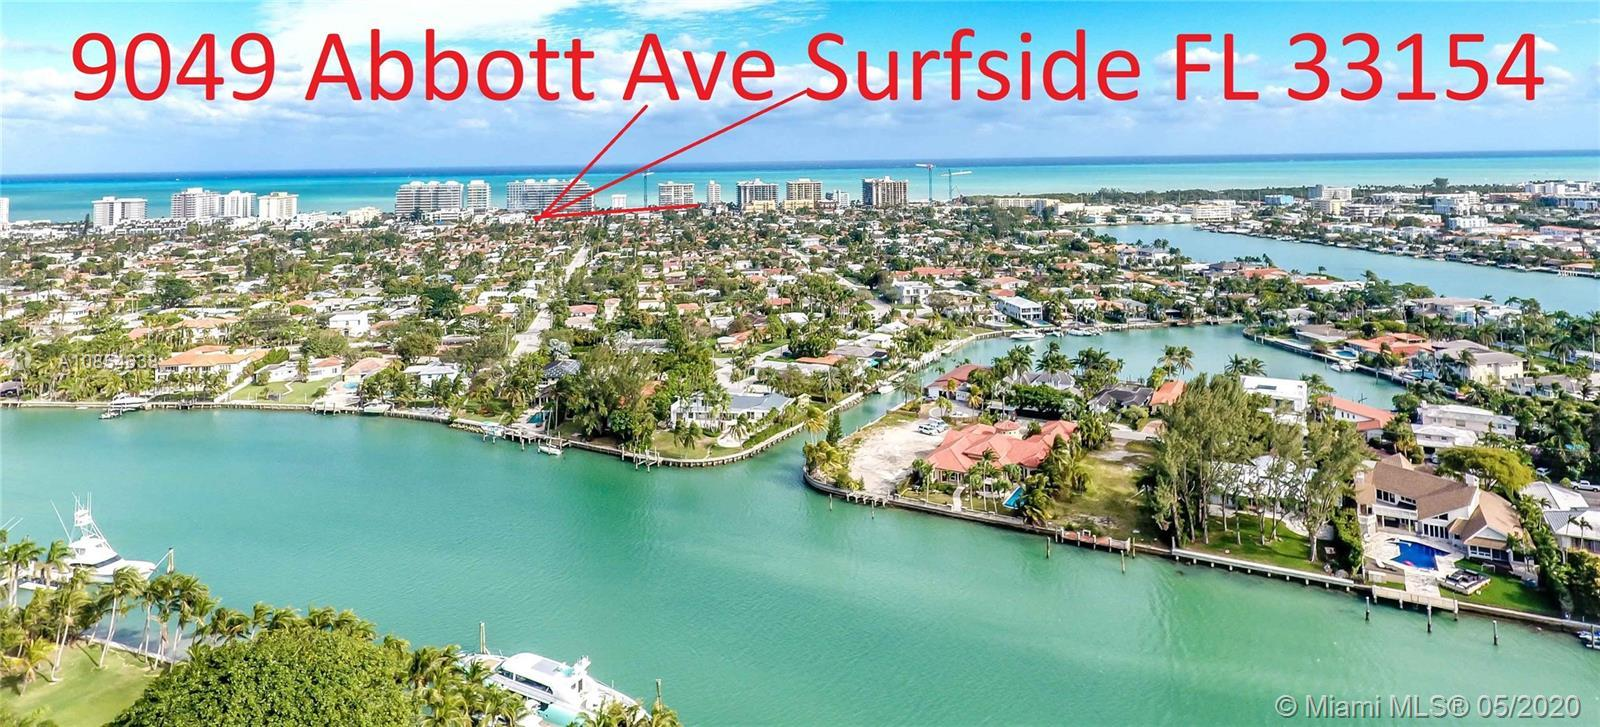 See Video on YouTube. Search: 9049 Abbott Ave Surfside FL 33154.